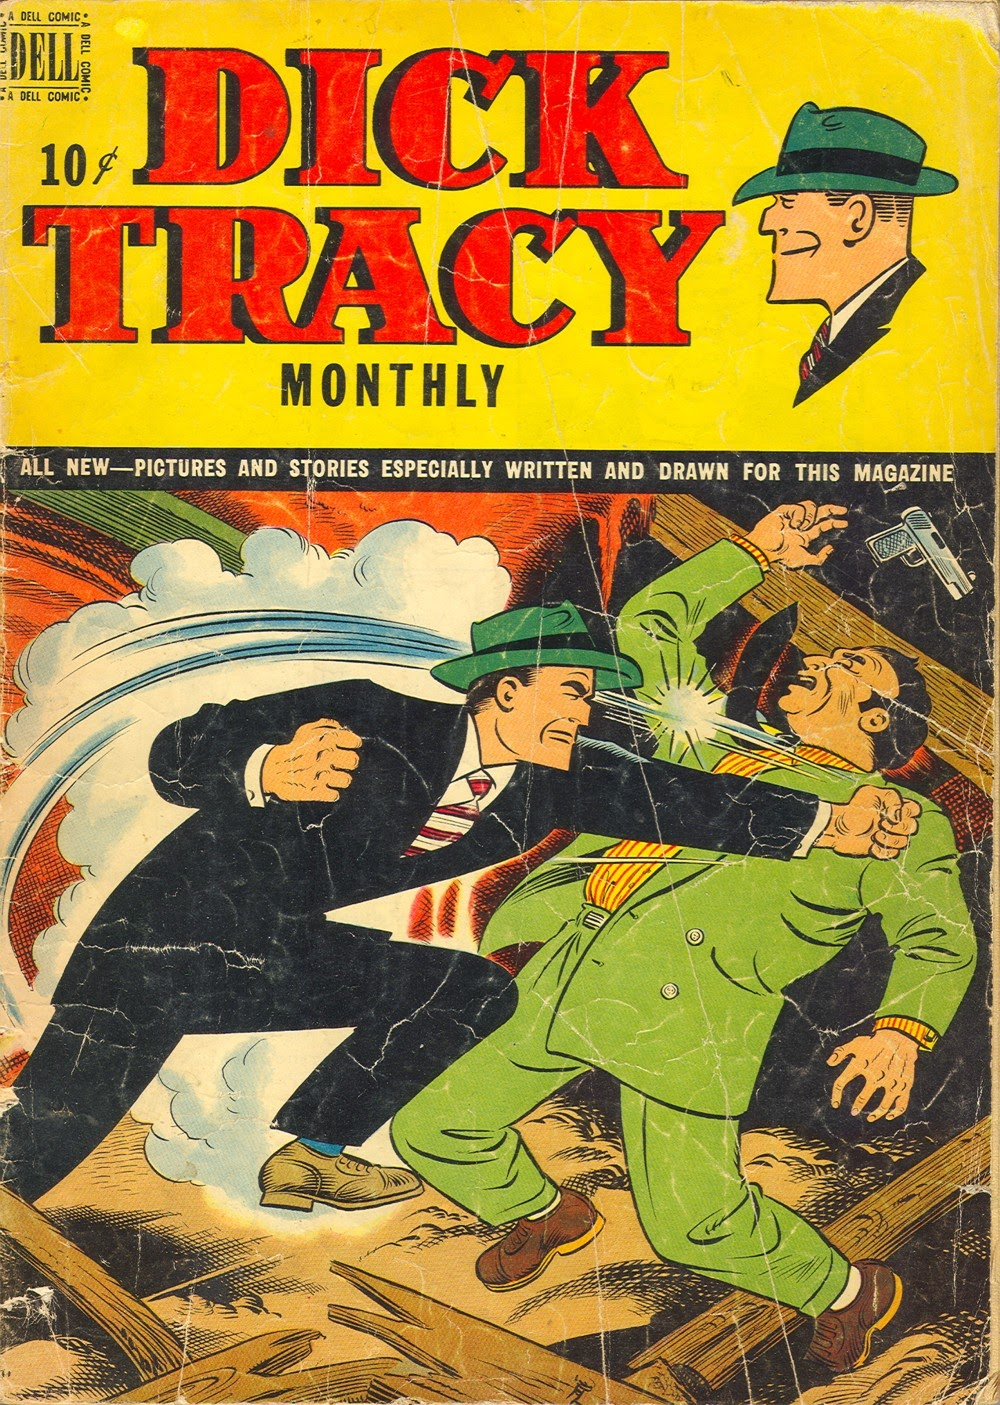 Dick Tracy Monthly 24 Page 1